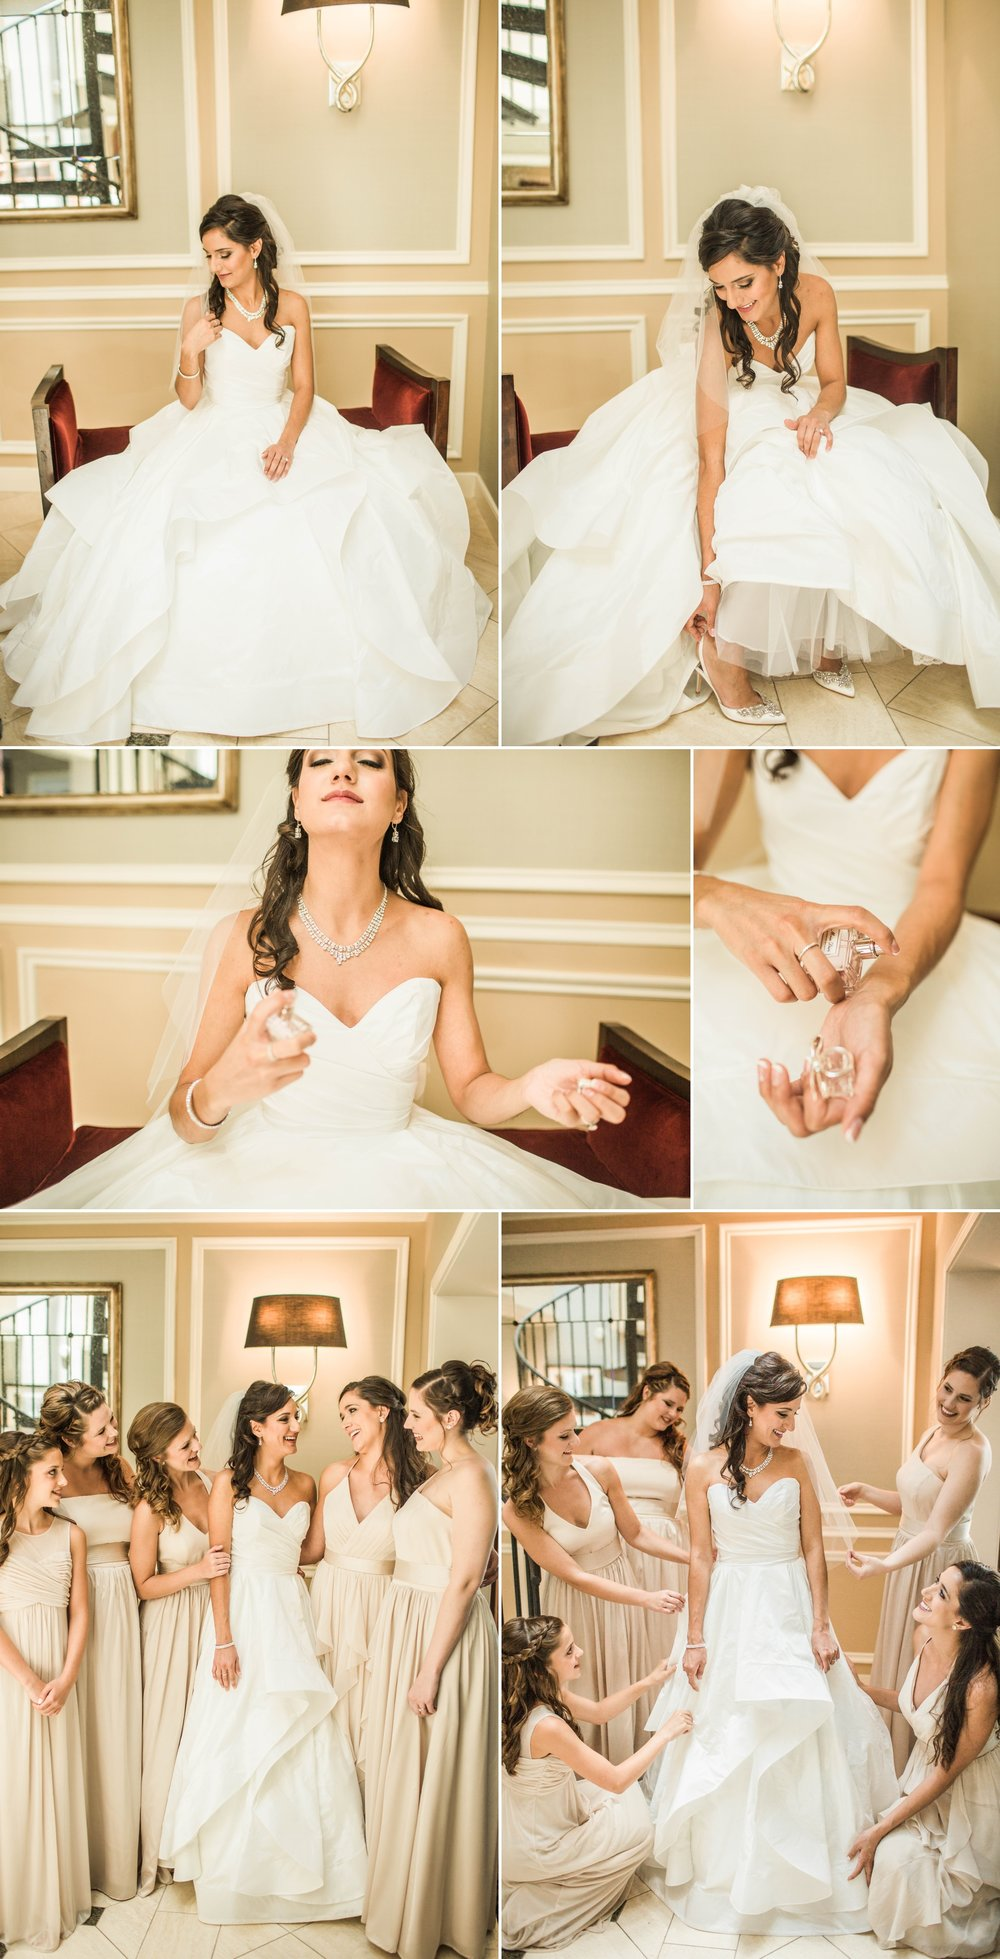 wedding-wedding day-bride-getting ready-details-bridal details-indianapolis-the omni